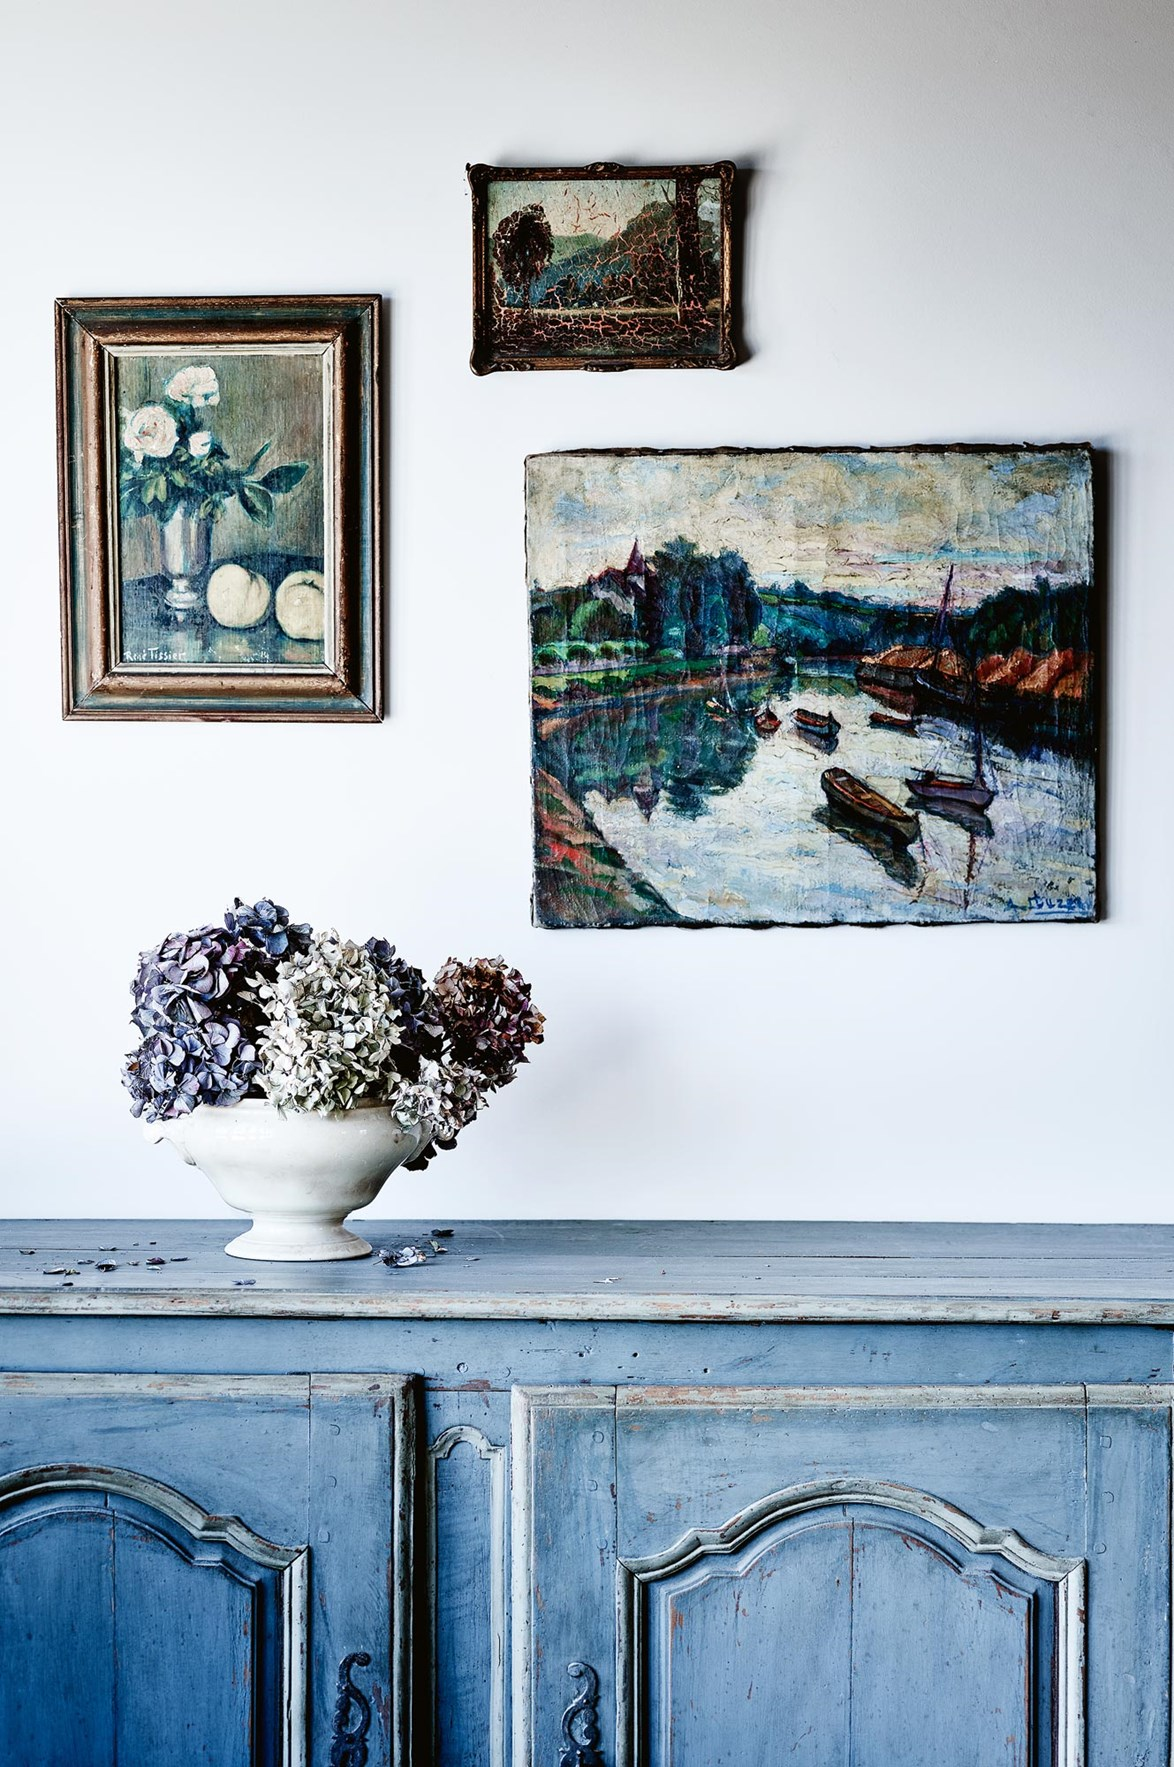 Hydrangeas take on a beautiful form when left to dry naturally. Here, the muted tones of violet, dusty pink and grey, mirror those in the artworks above.